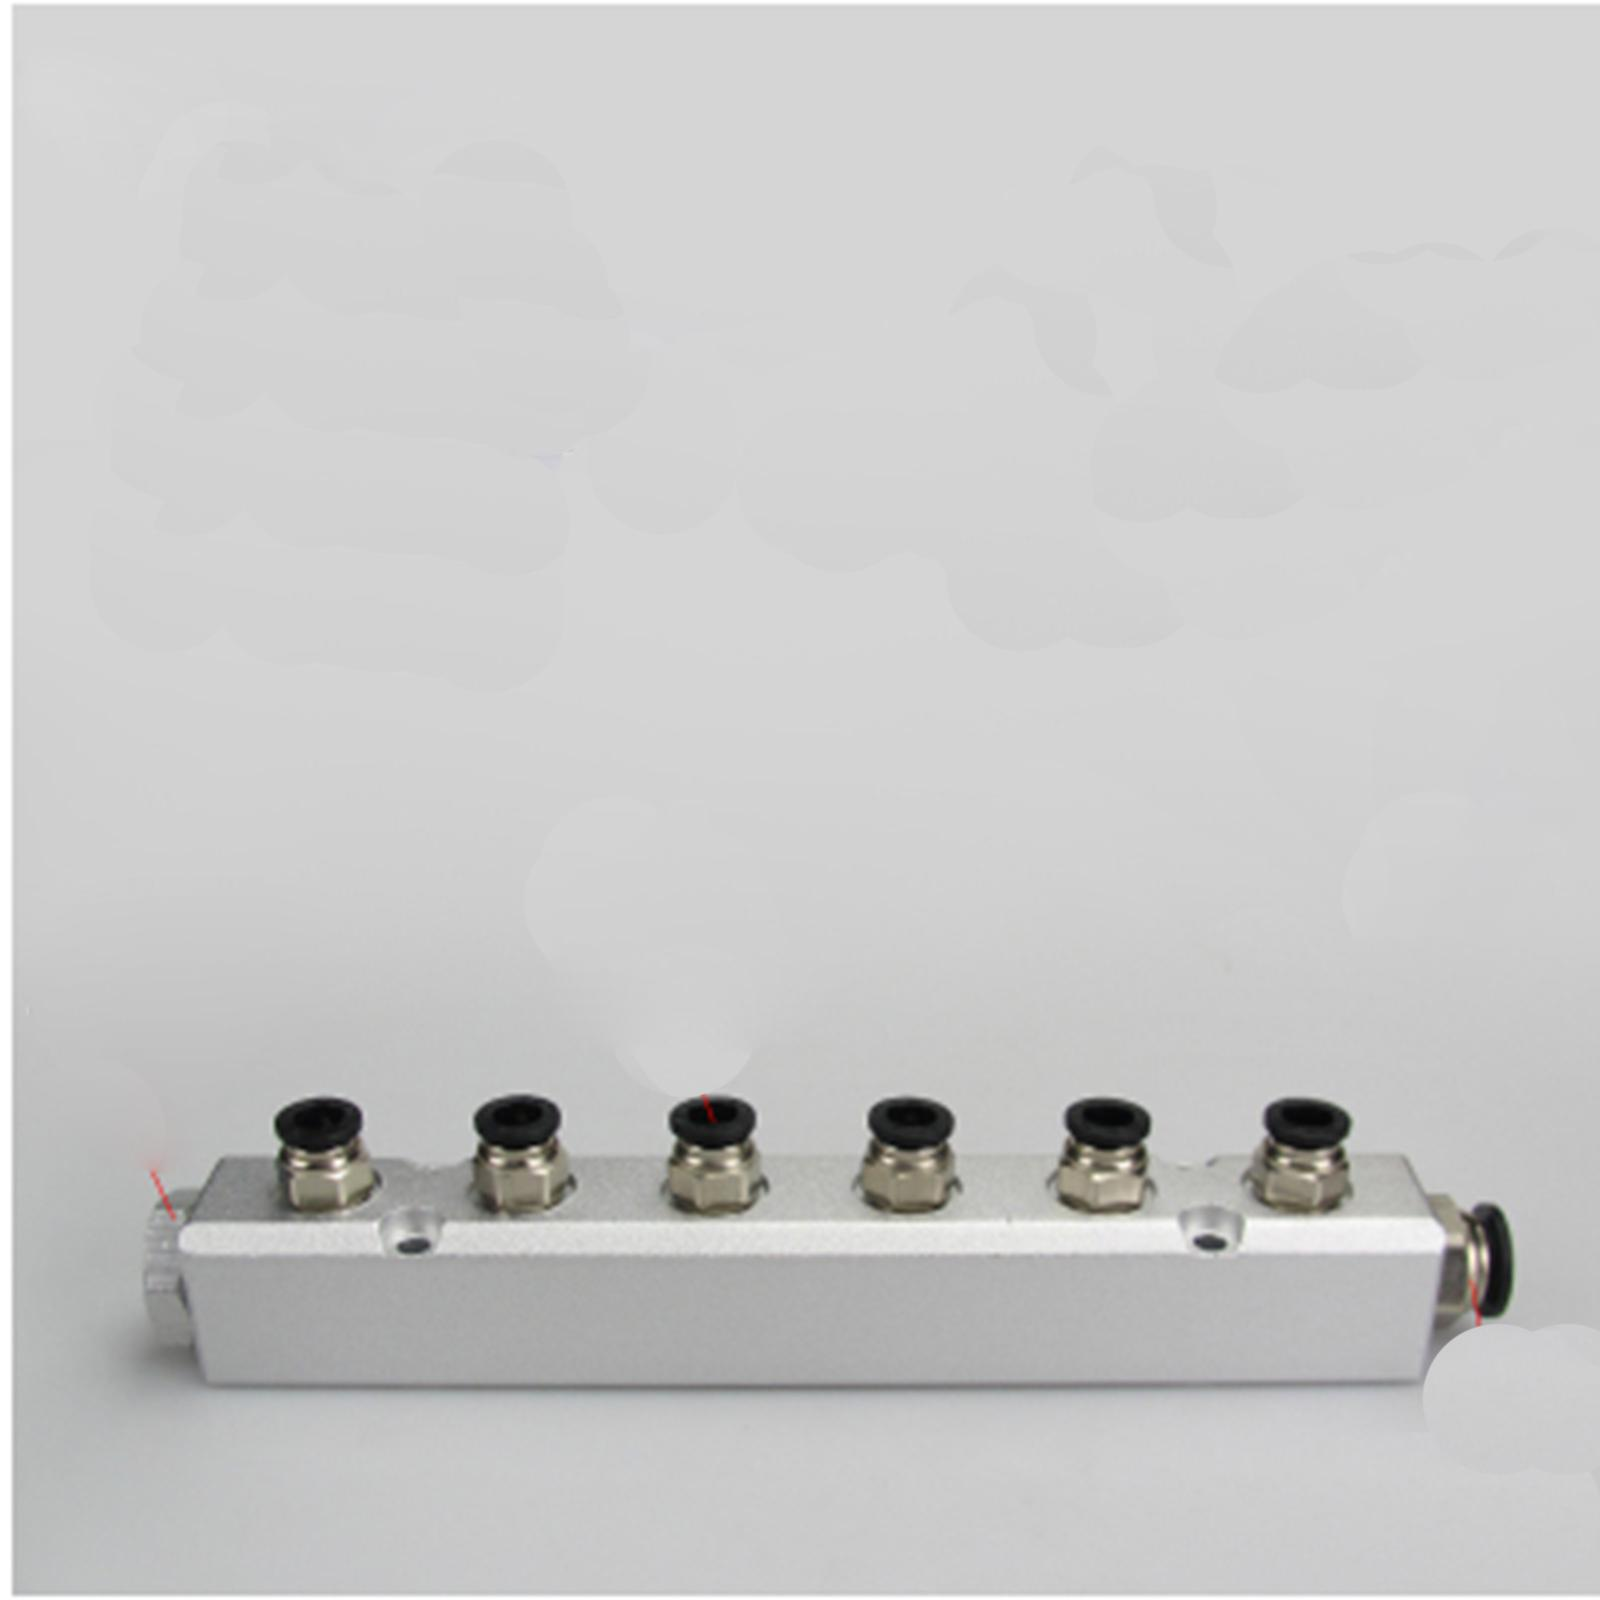 30x30mm G1/4 Out G1/2 In 6 Way Pneumatic Fitting Air Manifold Block Splitter расходомер barry 4 g1 2 2 8l min